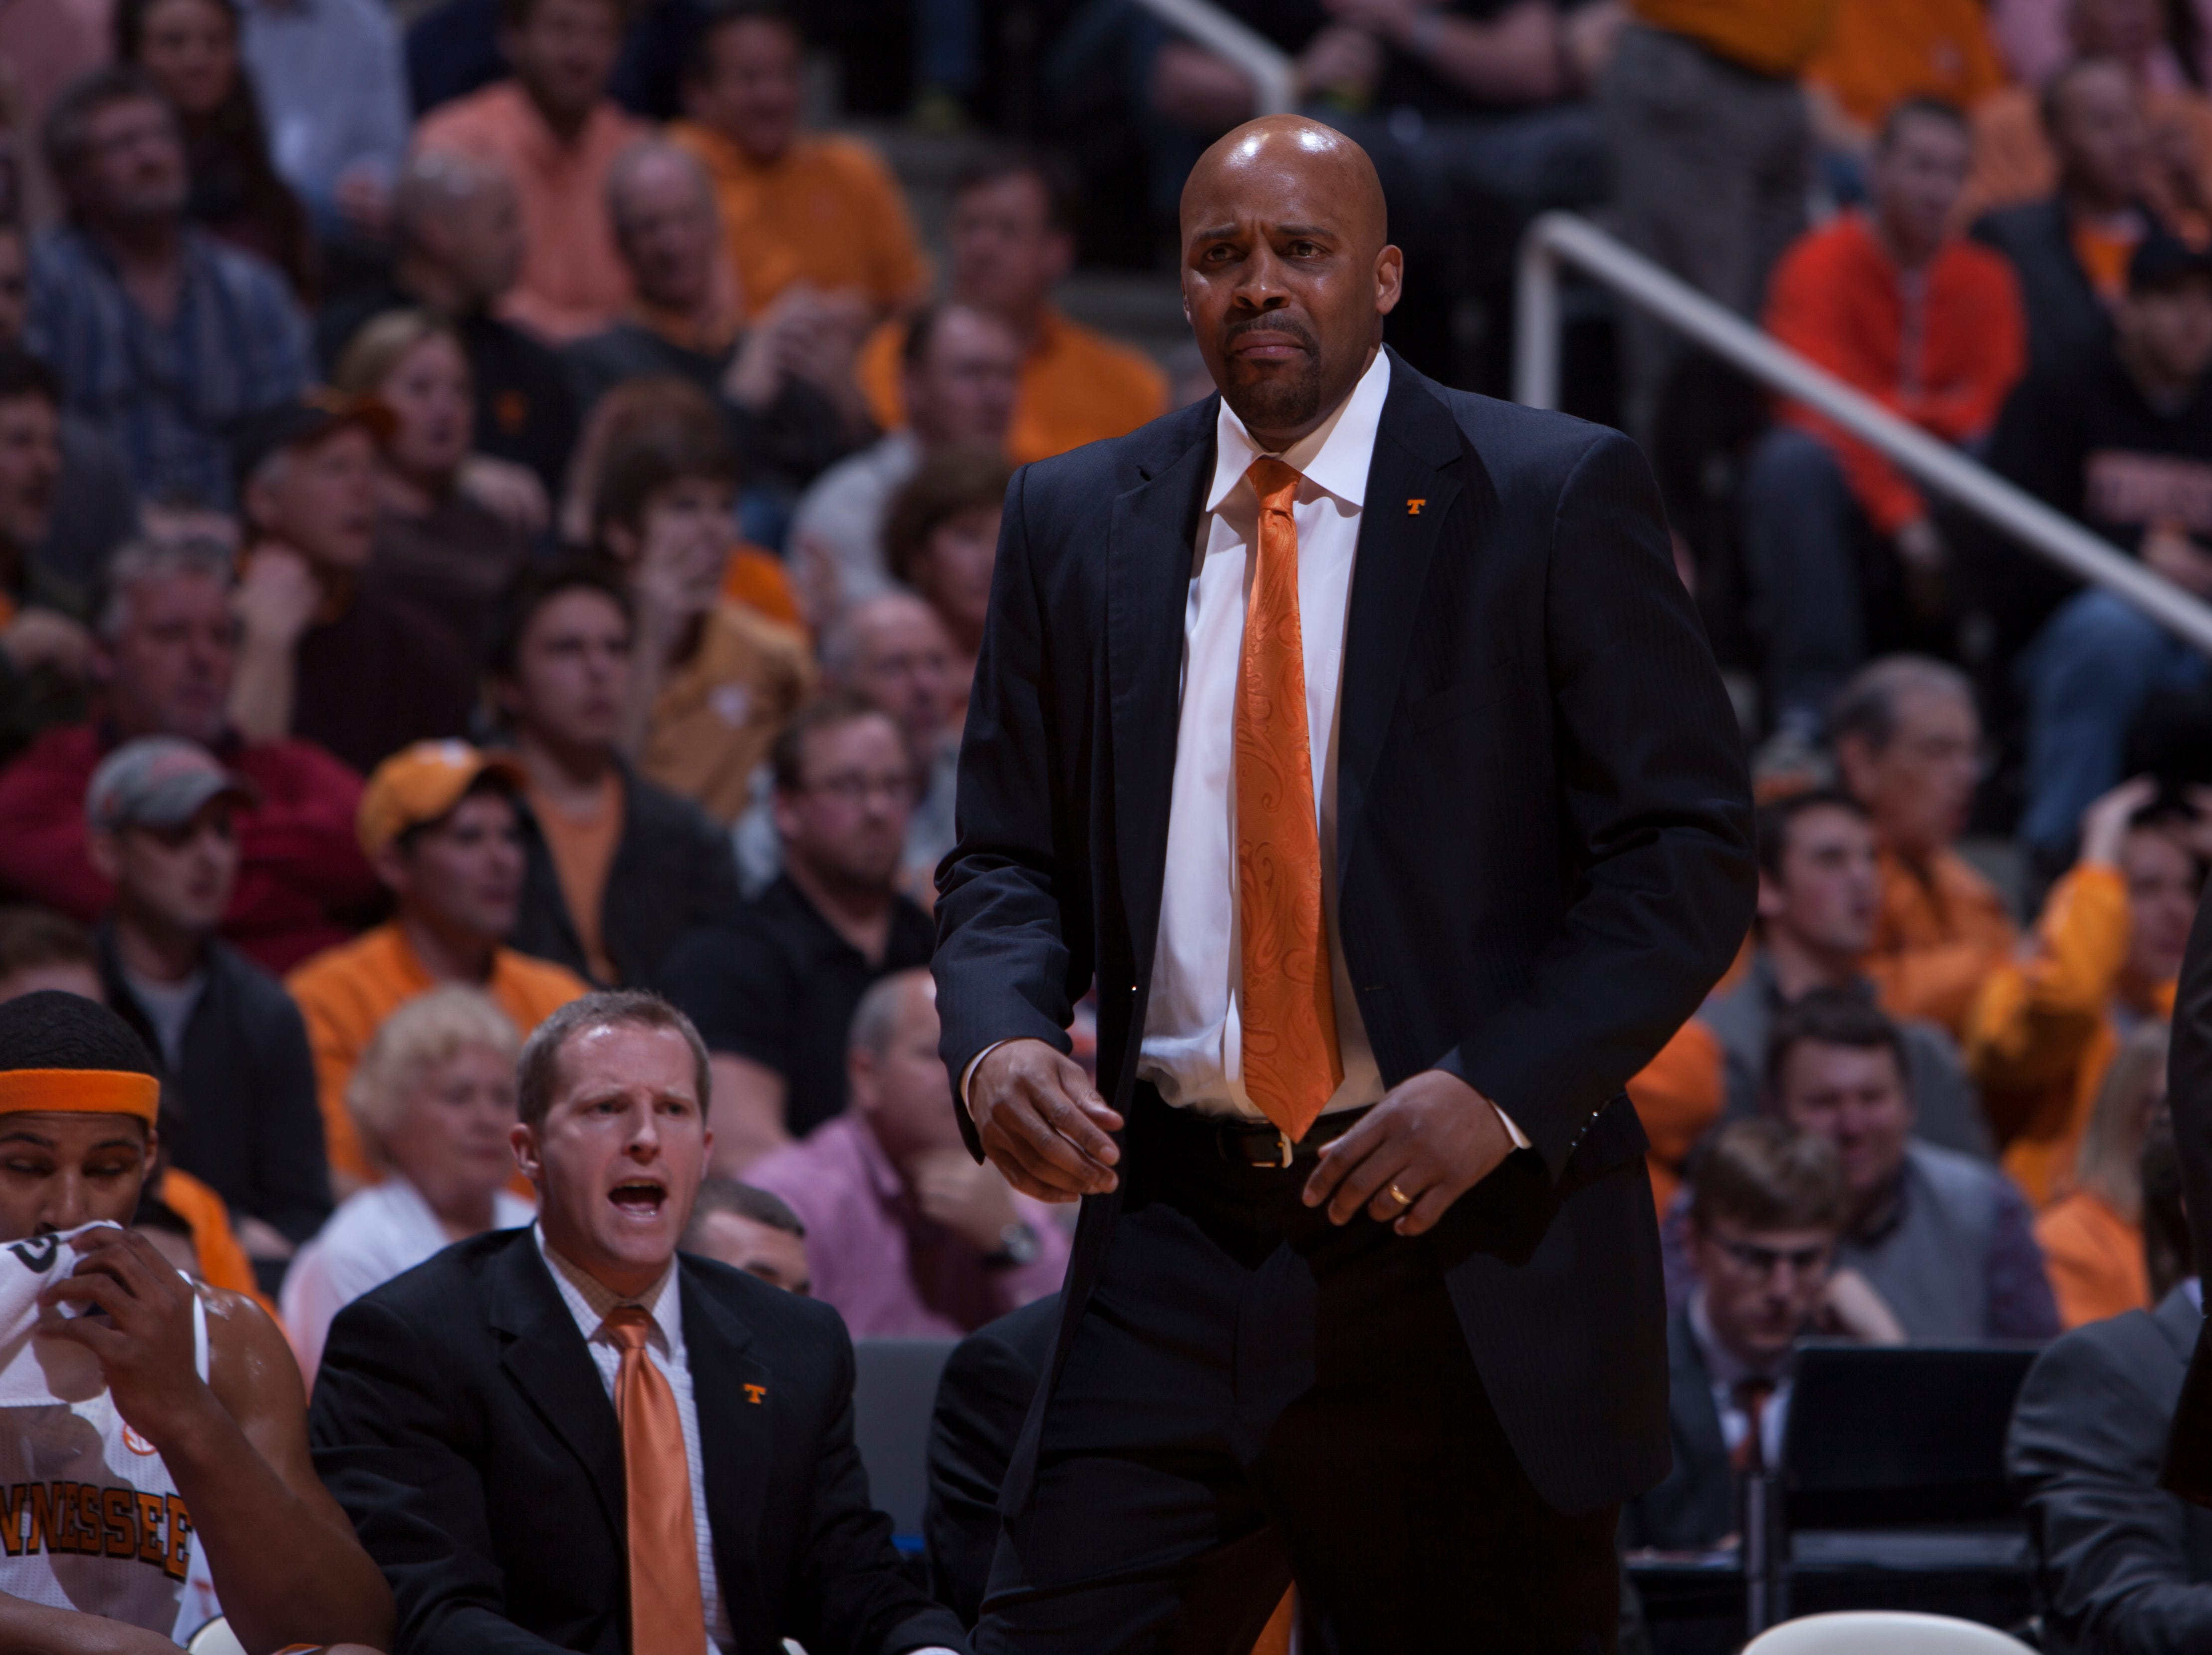 Tennessee head coach Cuonzo Martin reacts to a foul called on the Vols in the first half against Florida at Thompson-Boling Arena Tuesday, Feb. 26, 2013.